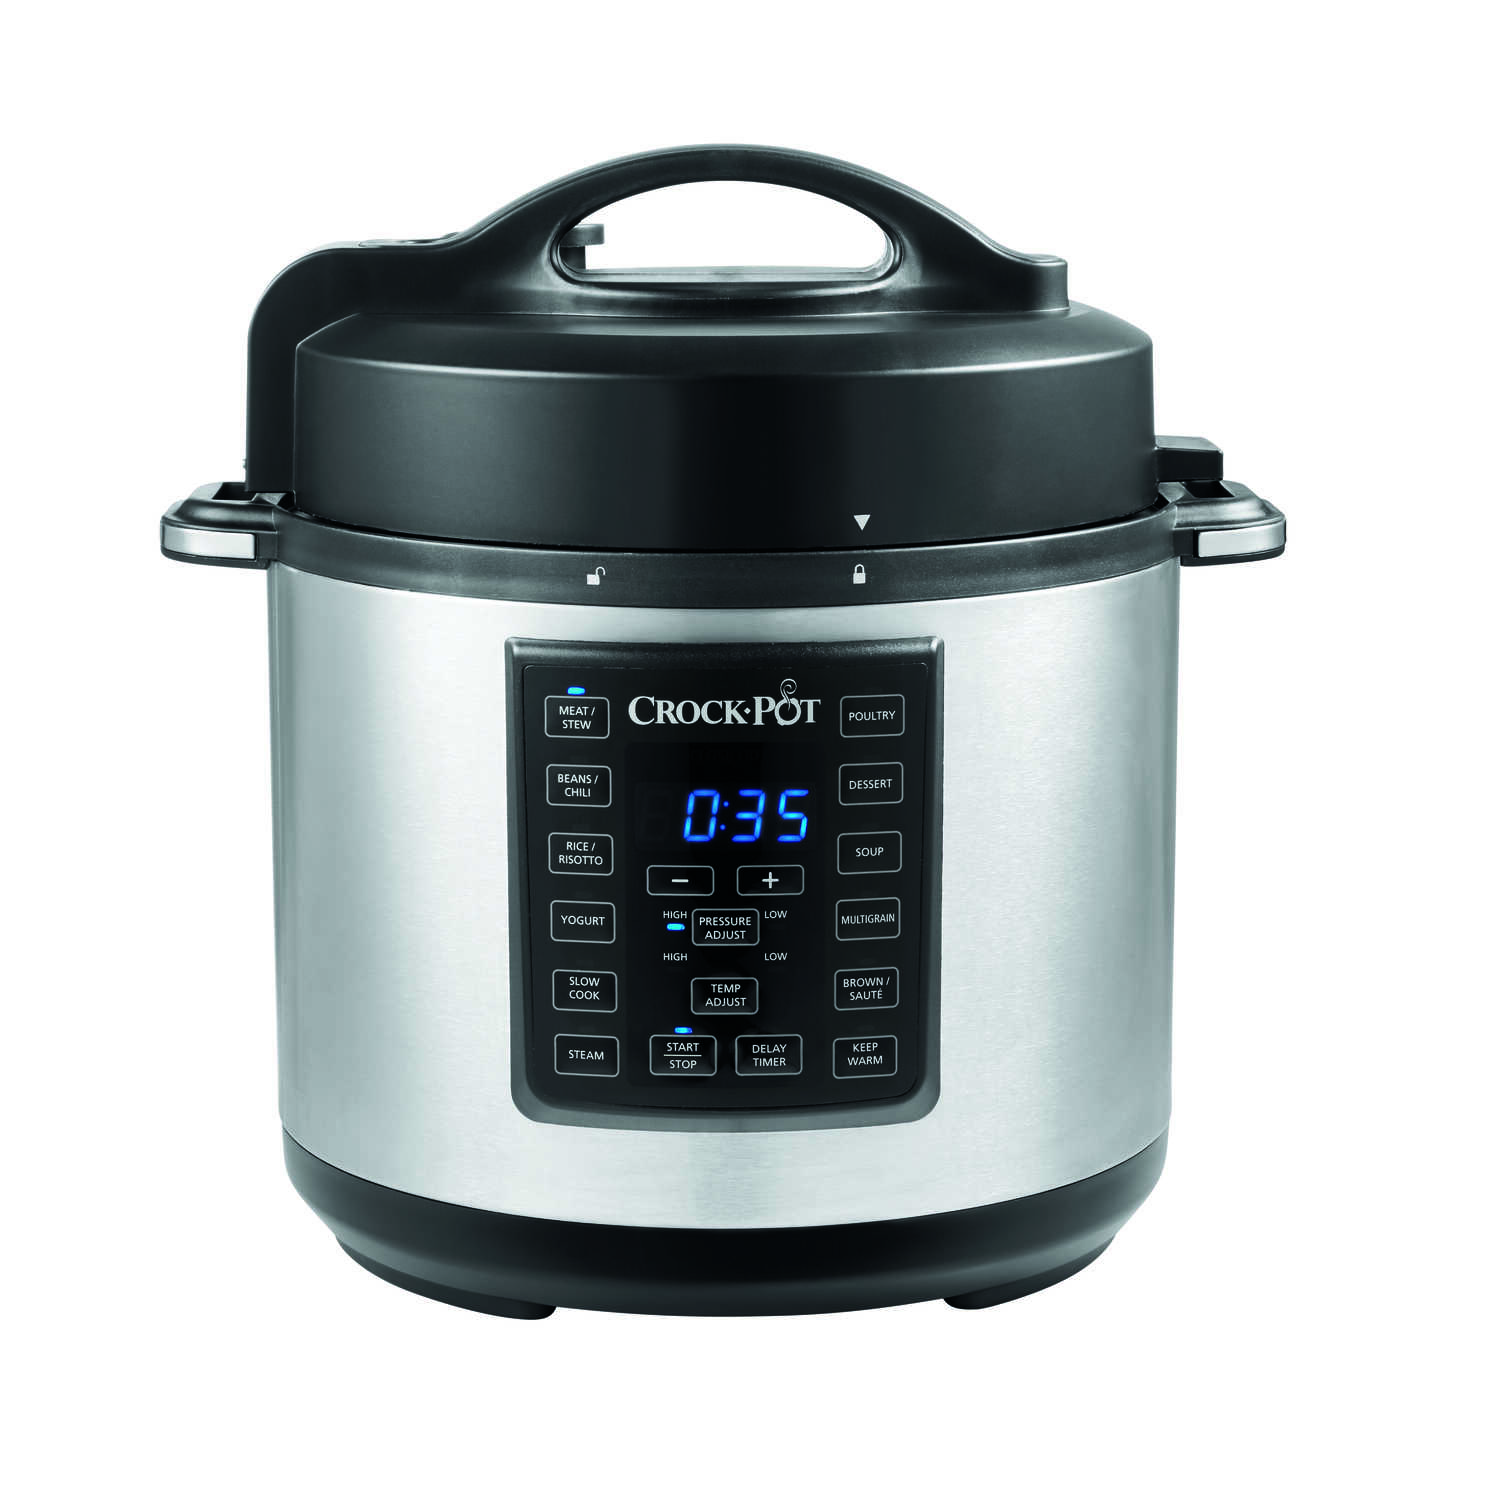 Sunbeam  Crock-Pot  6 qt. Black  Stainless Steel  Programmable Multi-Cooker